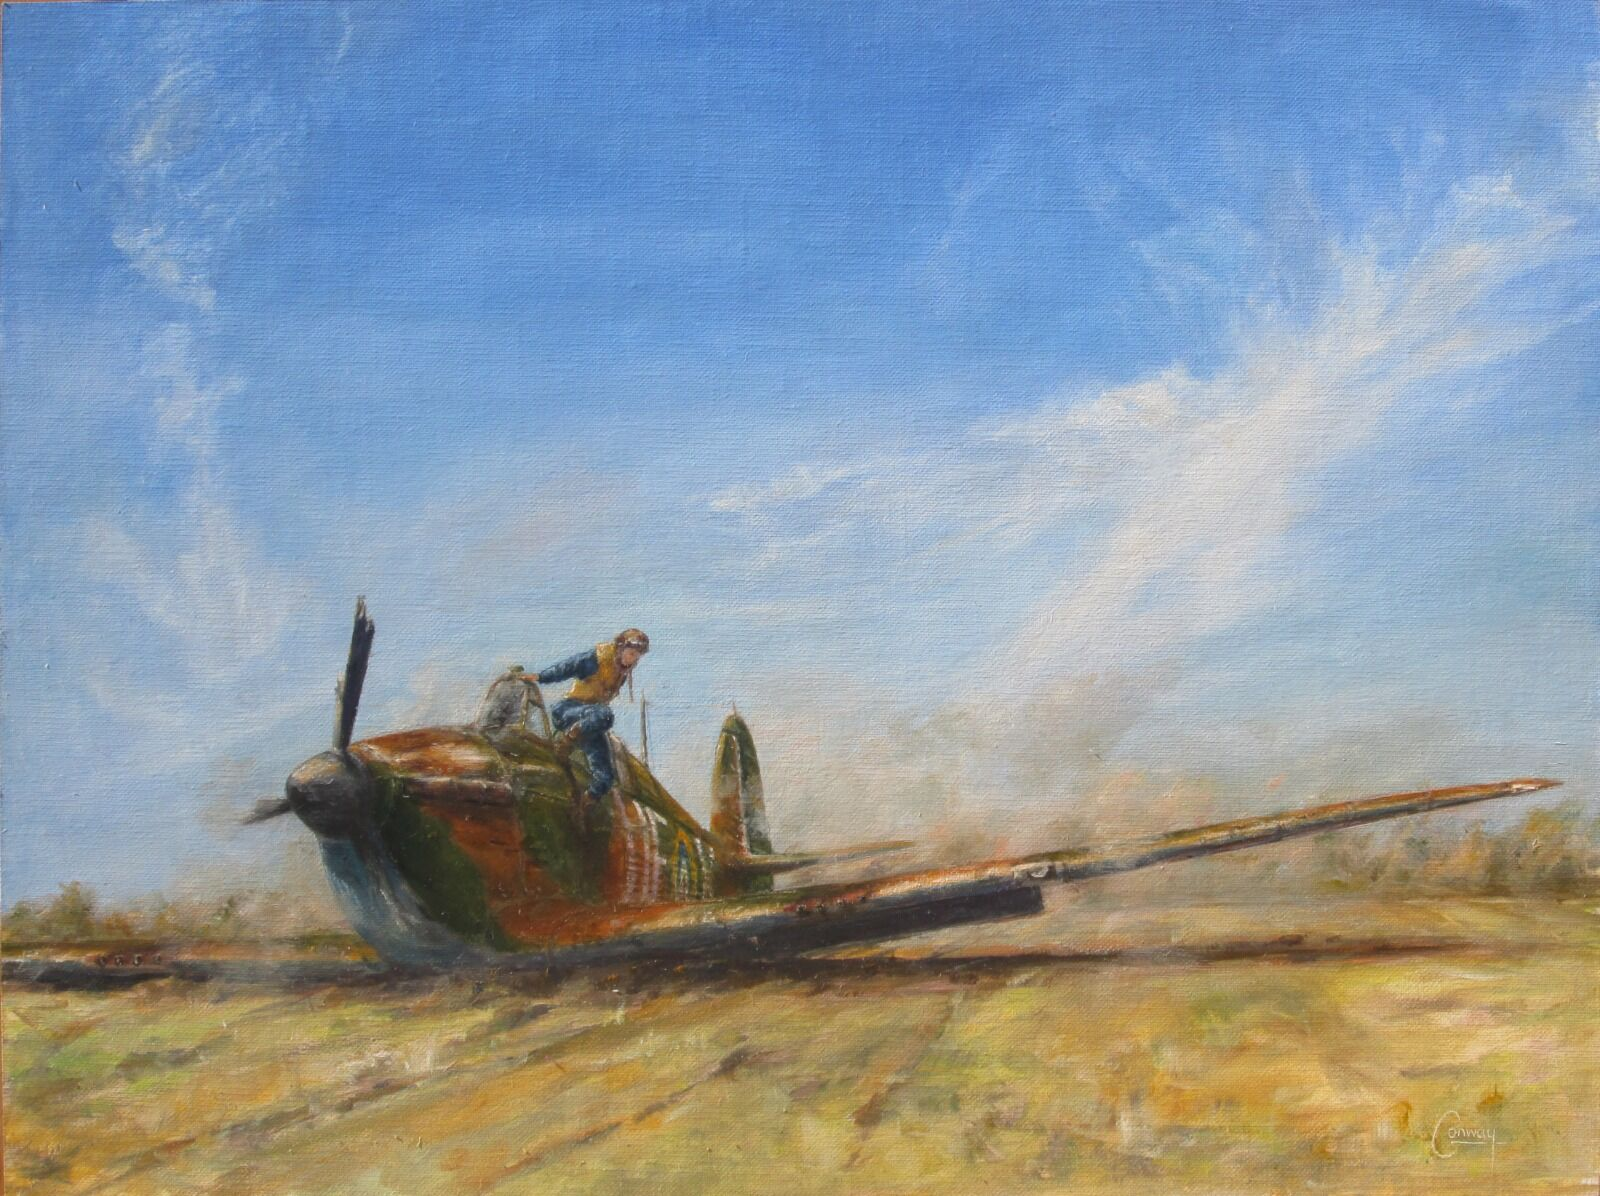 """""""Never Got Out So Quickly"""" - Hurricane of F/Sgt. Arthur Herbert Dorrien 'Bill' Pond, No. 601 Squadron (Sold)"""